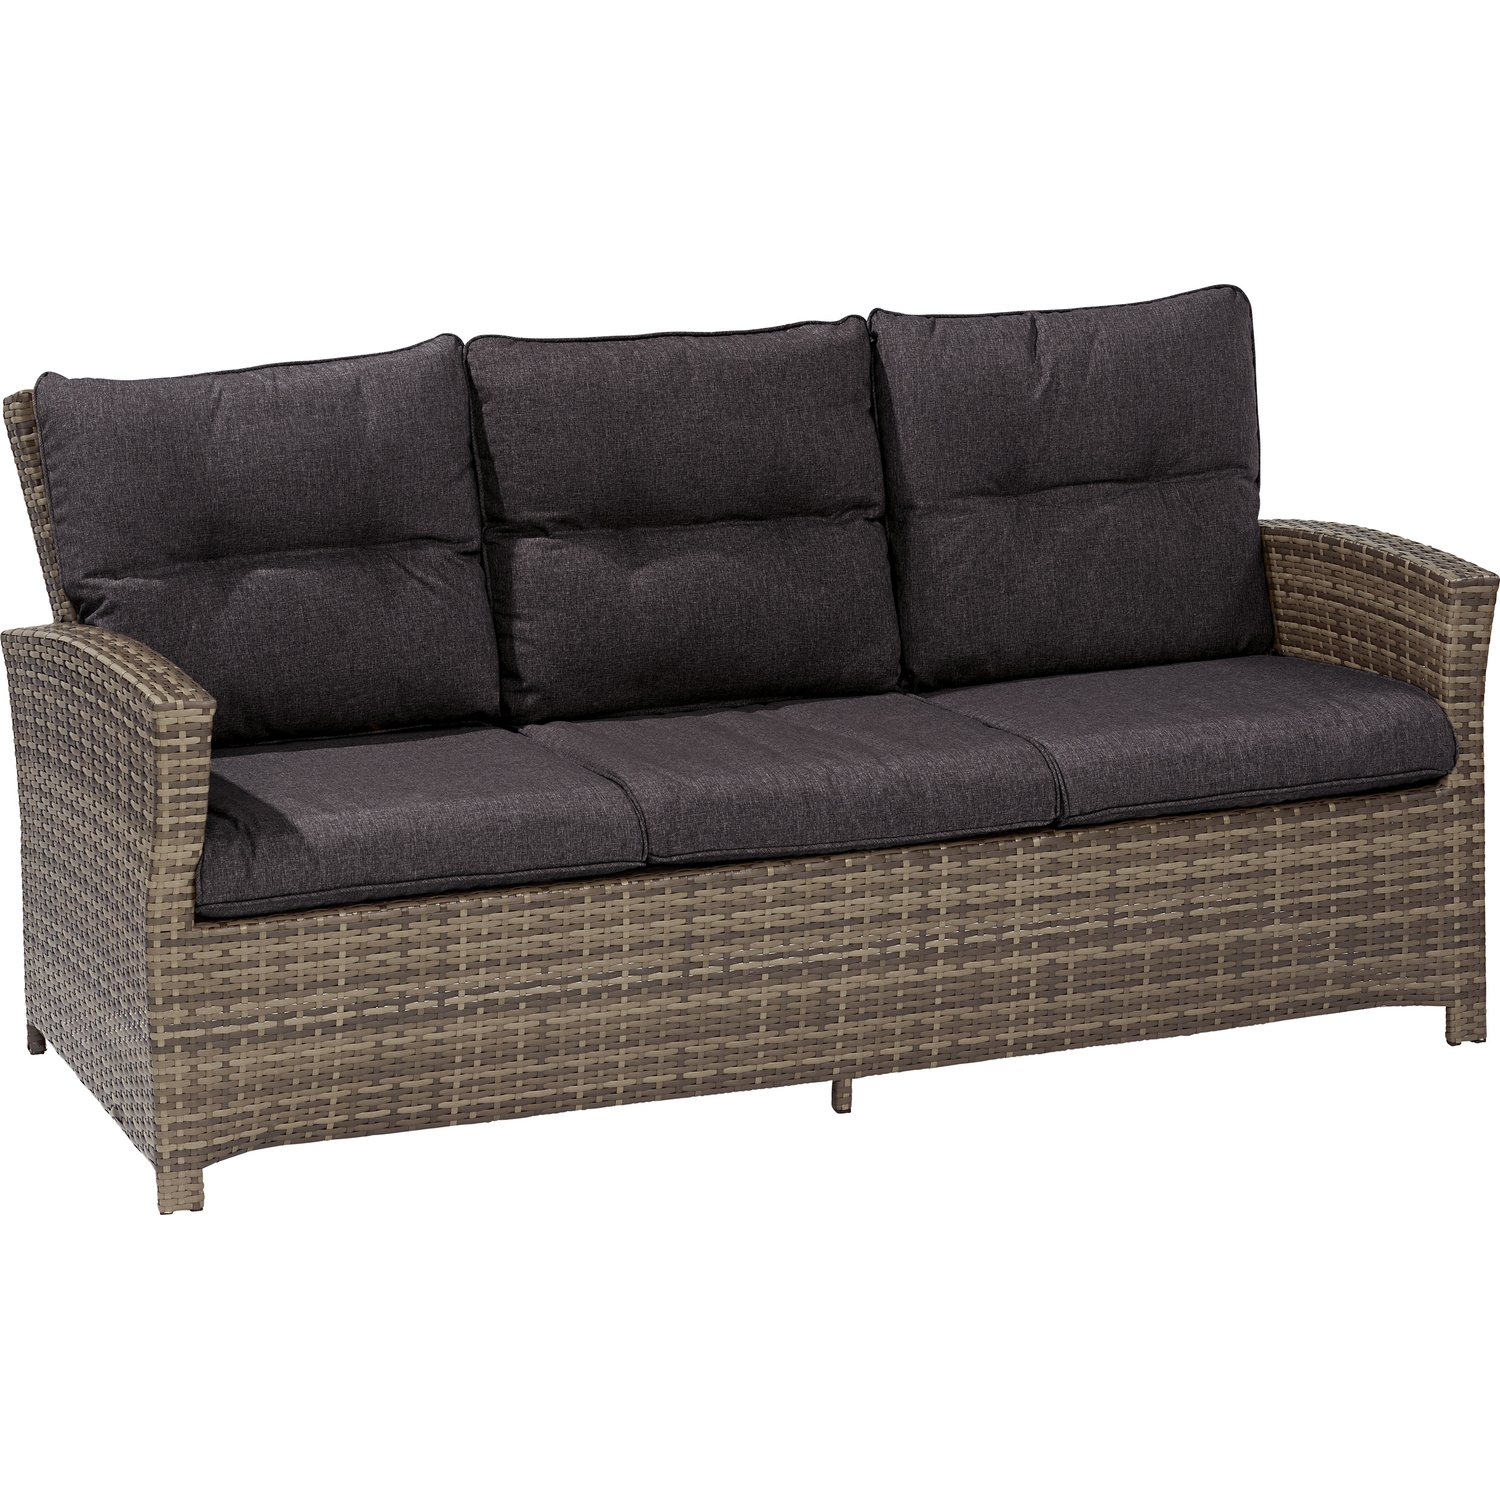 Full Size of Polyrattan Sofa 2 Sitzer Balkon Tchibo Set Grau Lounge Rattan Outdoor Vermont 3 Aus Shadow Dark Night Türkis Goodlife Mit Recamiere Verstellbarer Sitztiefe Sofa Polyrattan Sofa